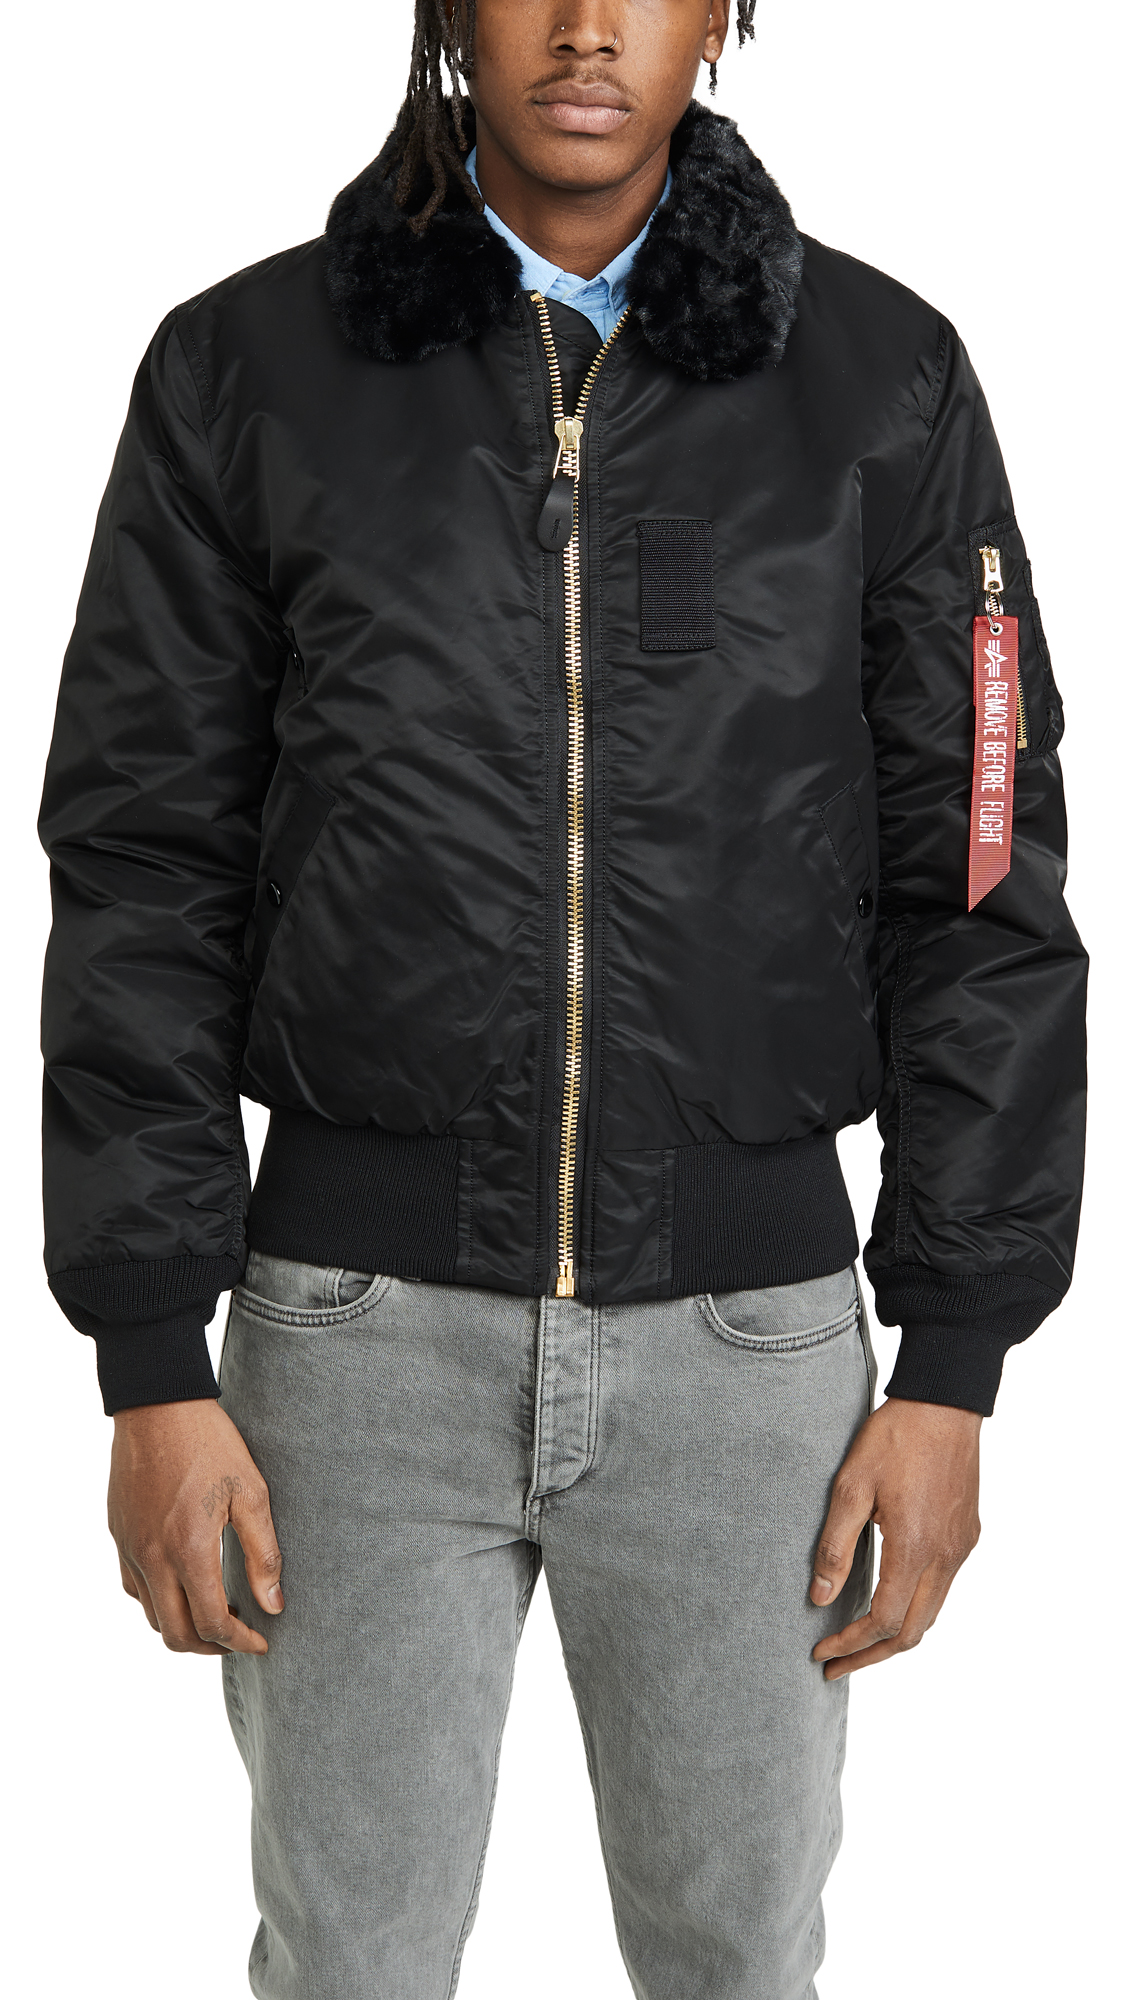 638834887c1 Alpha Industries B-15 Slim Fit Jacket